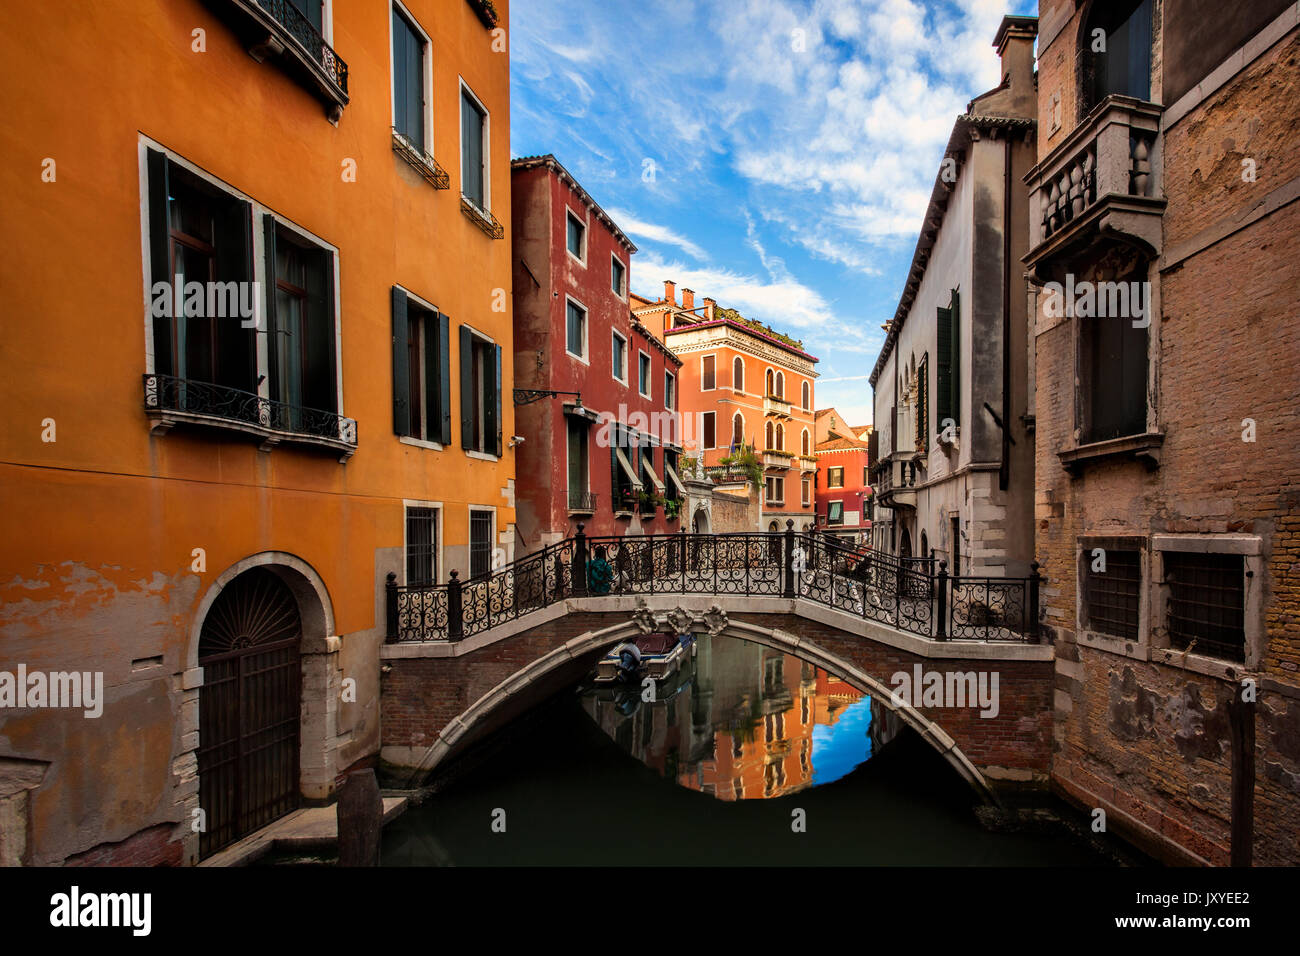 Quiet, residential canal in Venice, Italy. - Stock Image